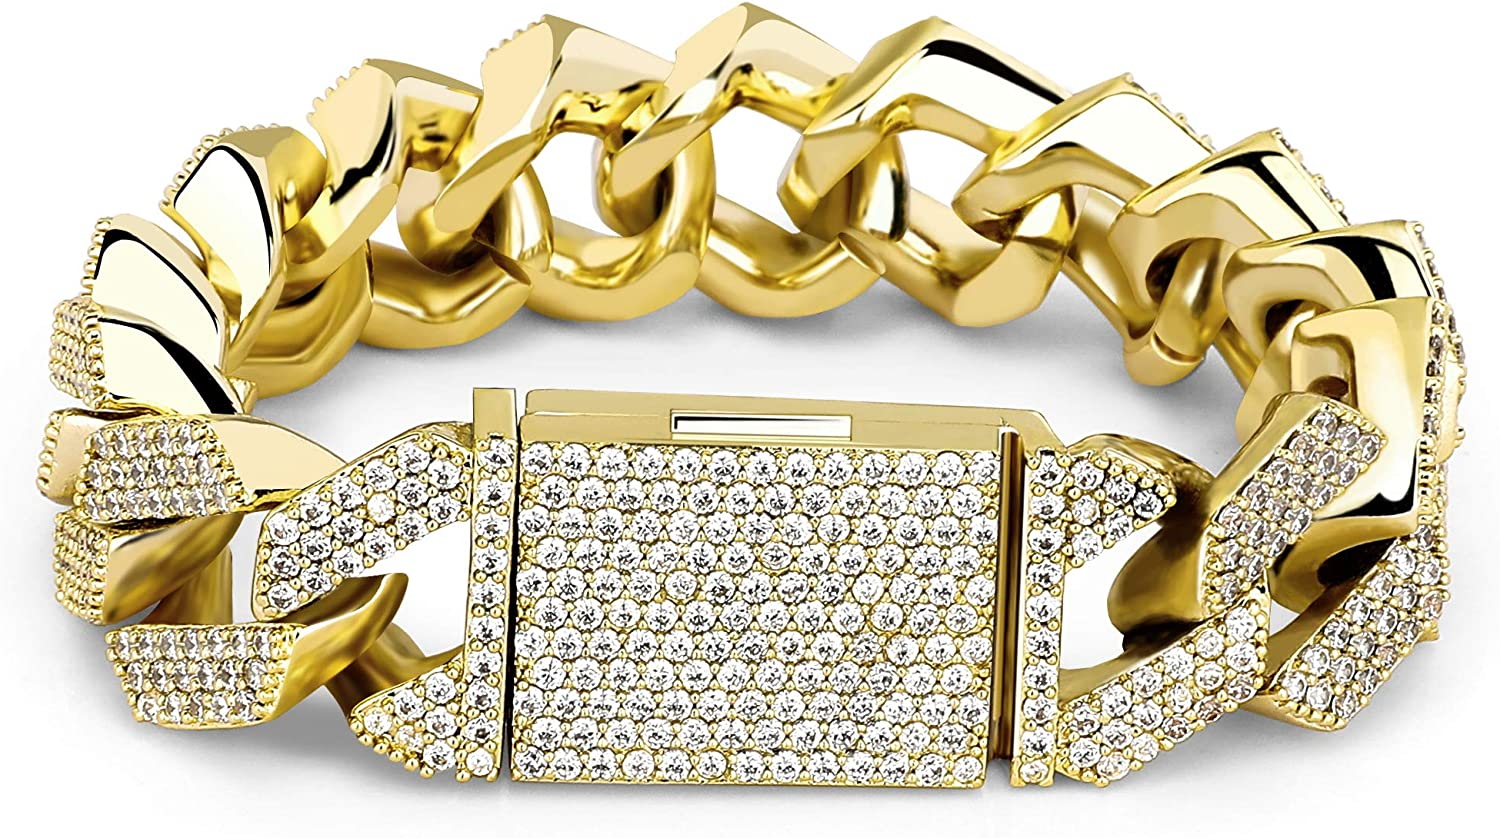 TOPGRILLZ San Spring new work one after another Diego Mall 20mm 6 Times 14K Gold Plated Prong Setti Full Out Iced